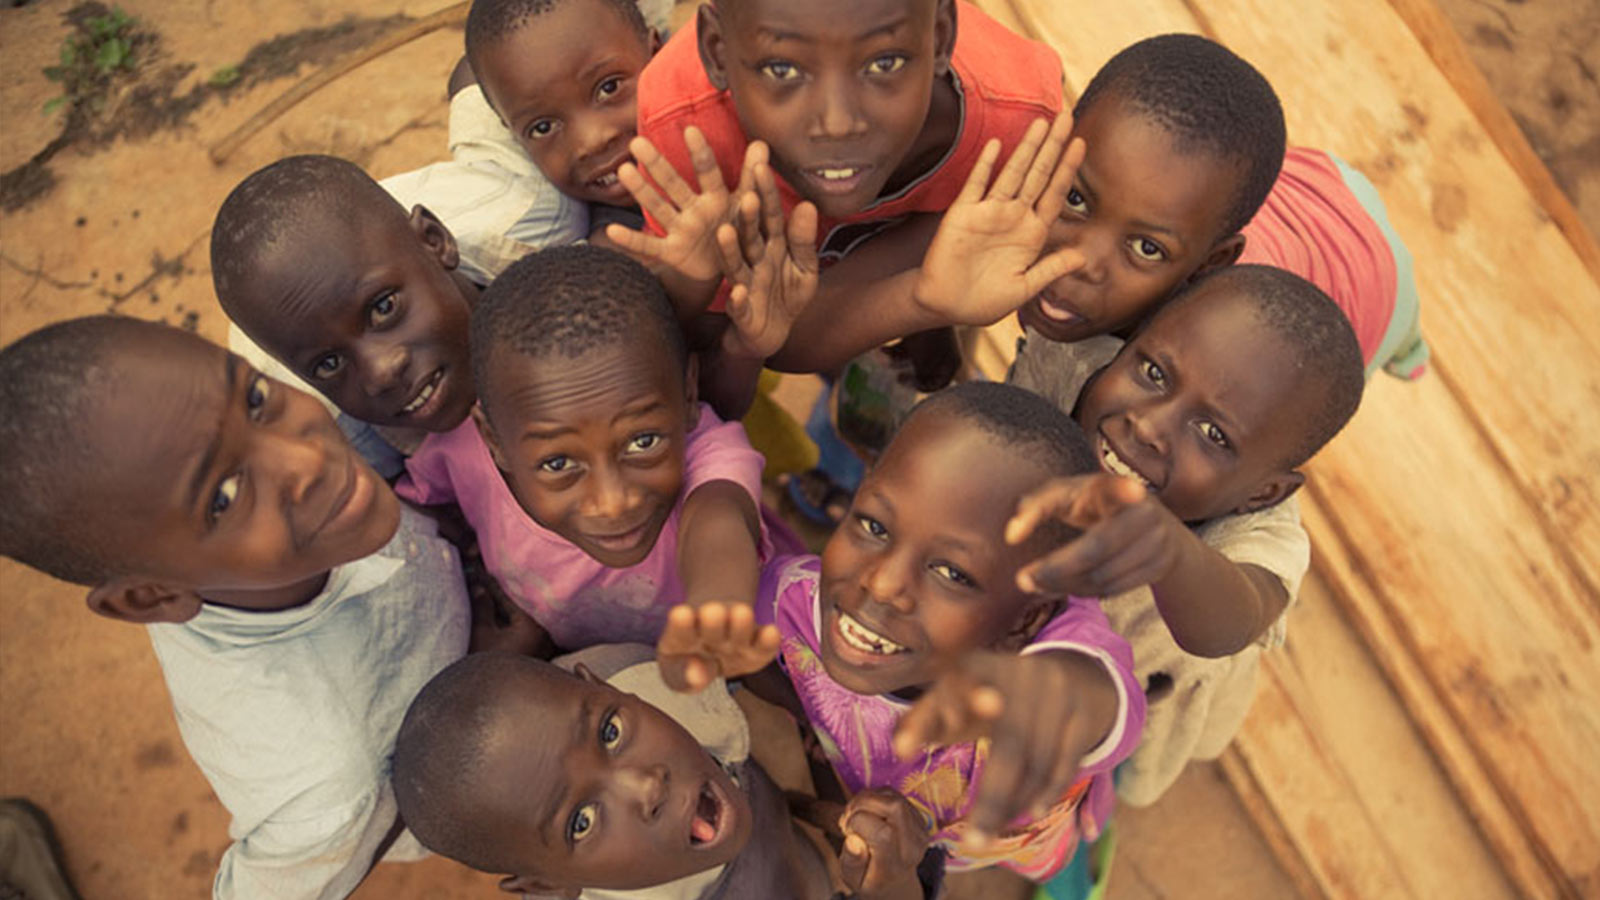 A group of Rwandan children